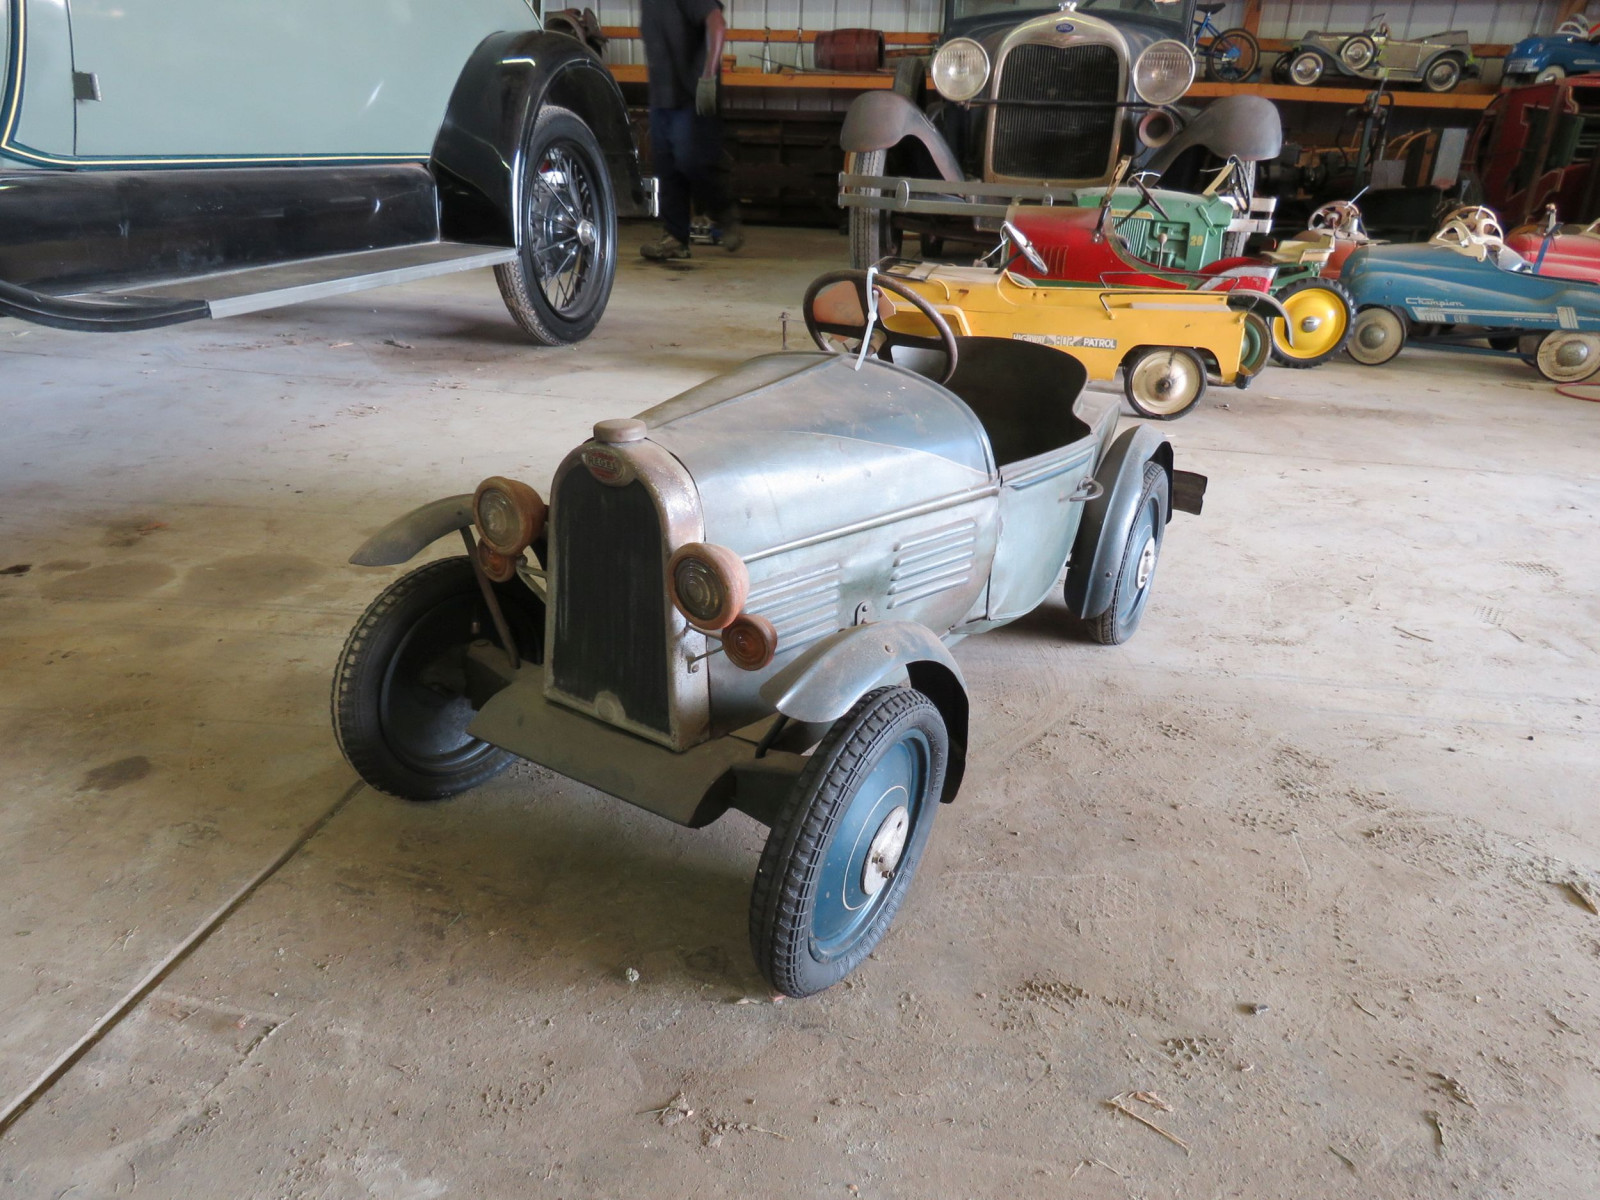 Vintage Regal Cycles Roadster Pedal Car - Image 1